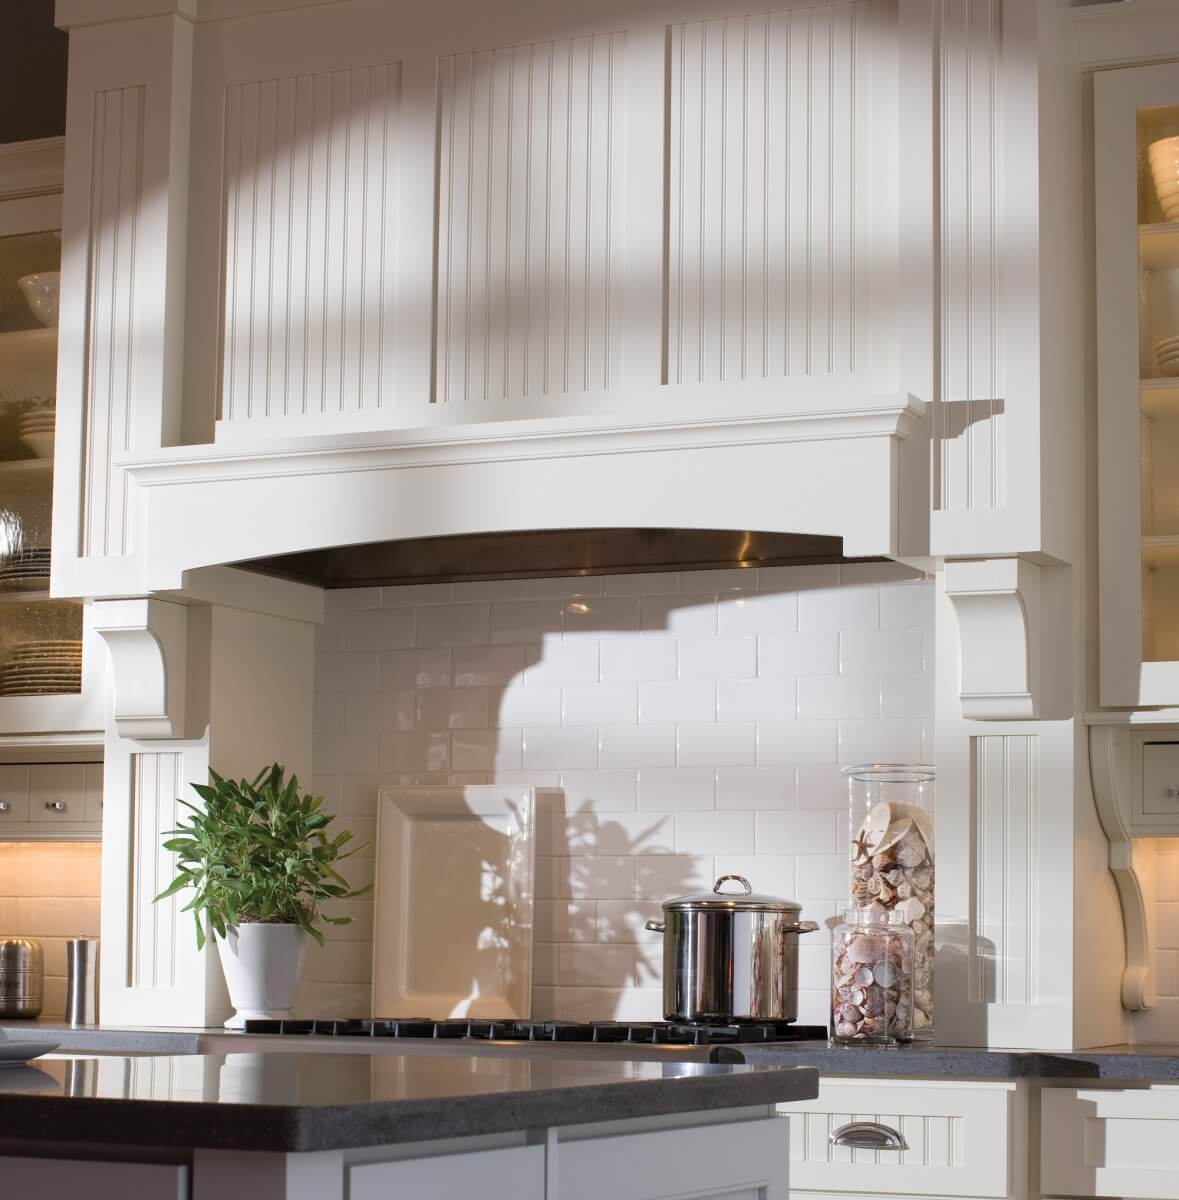 Dura Supreme Cabinetry wood hood with a beadboard look.